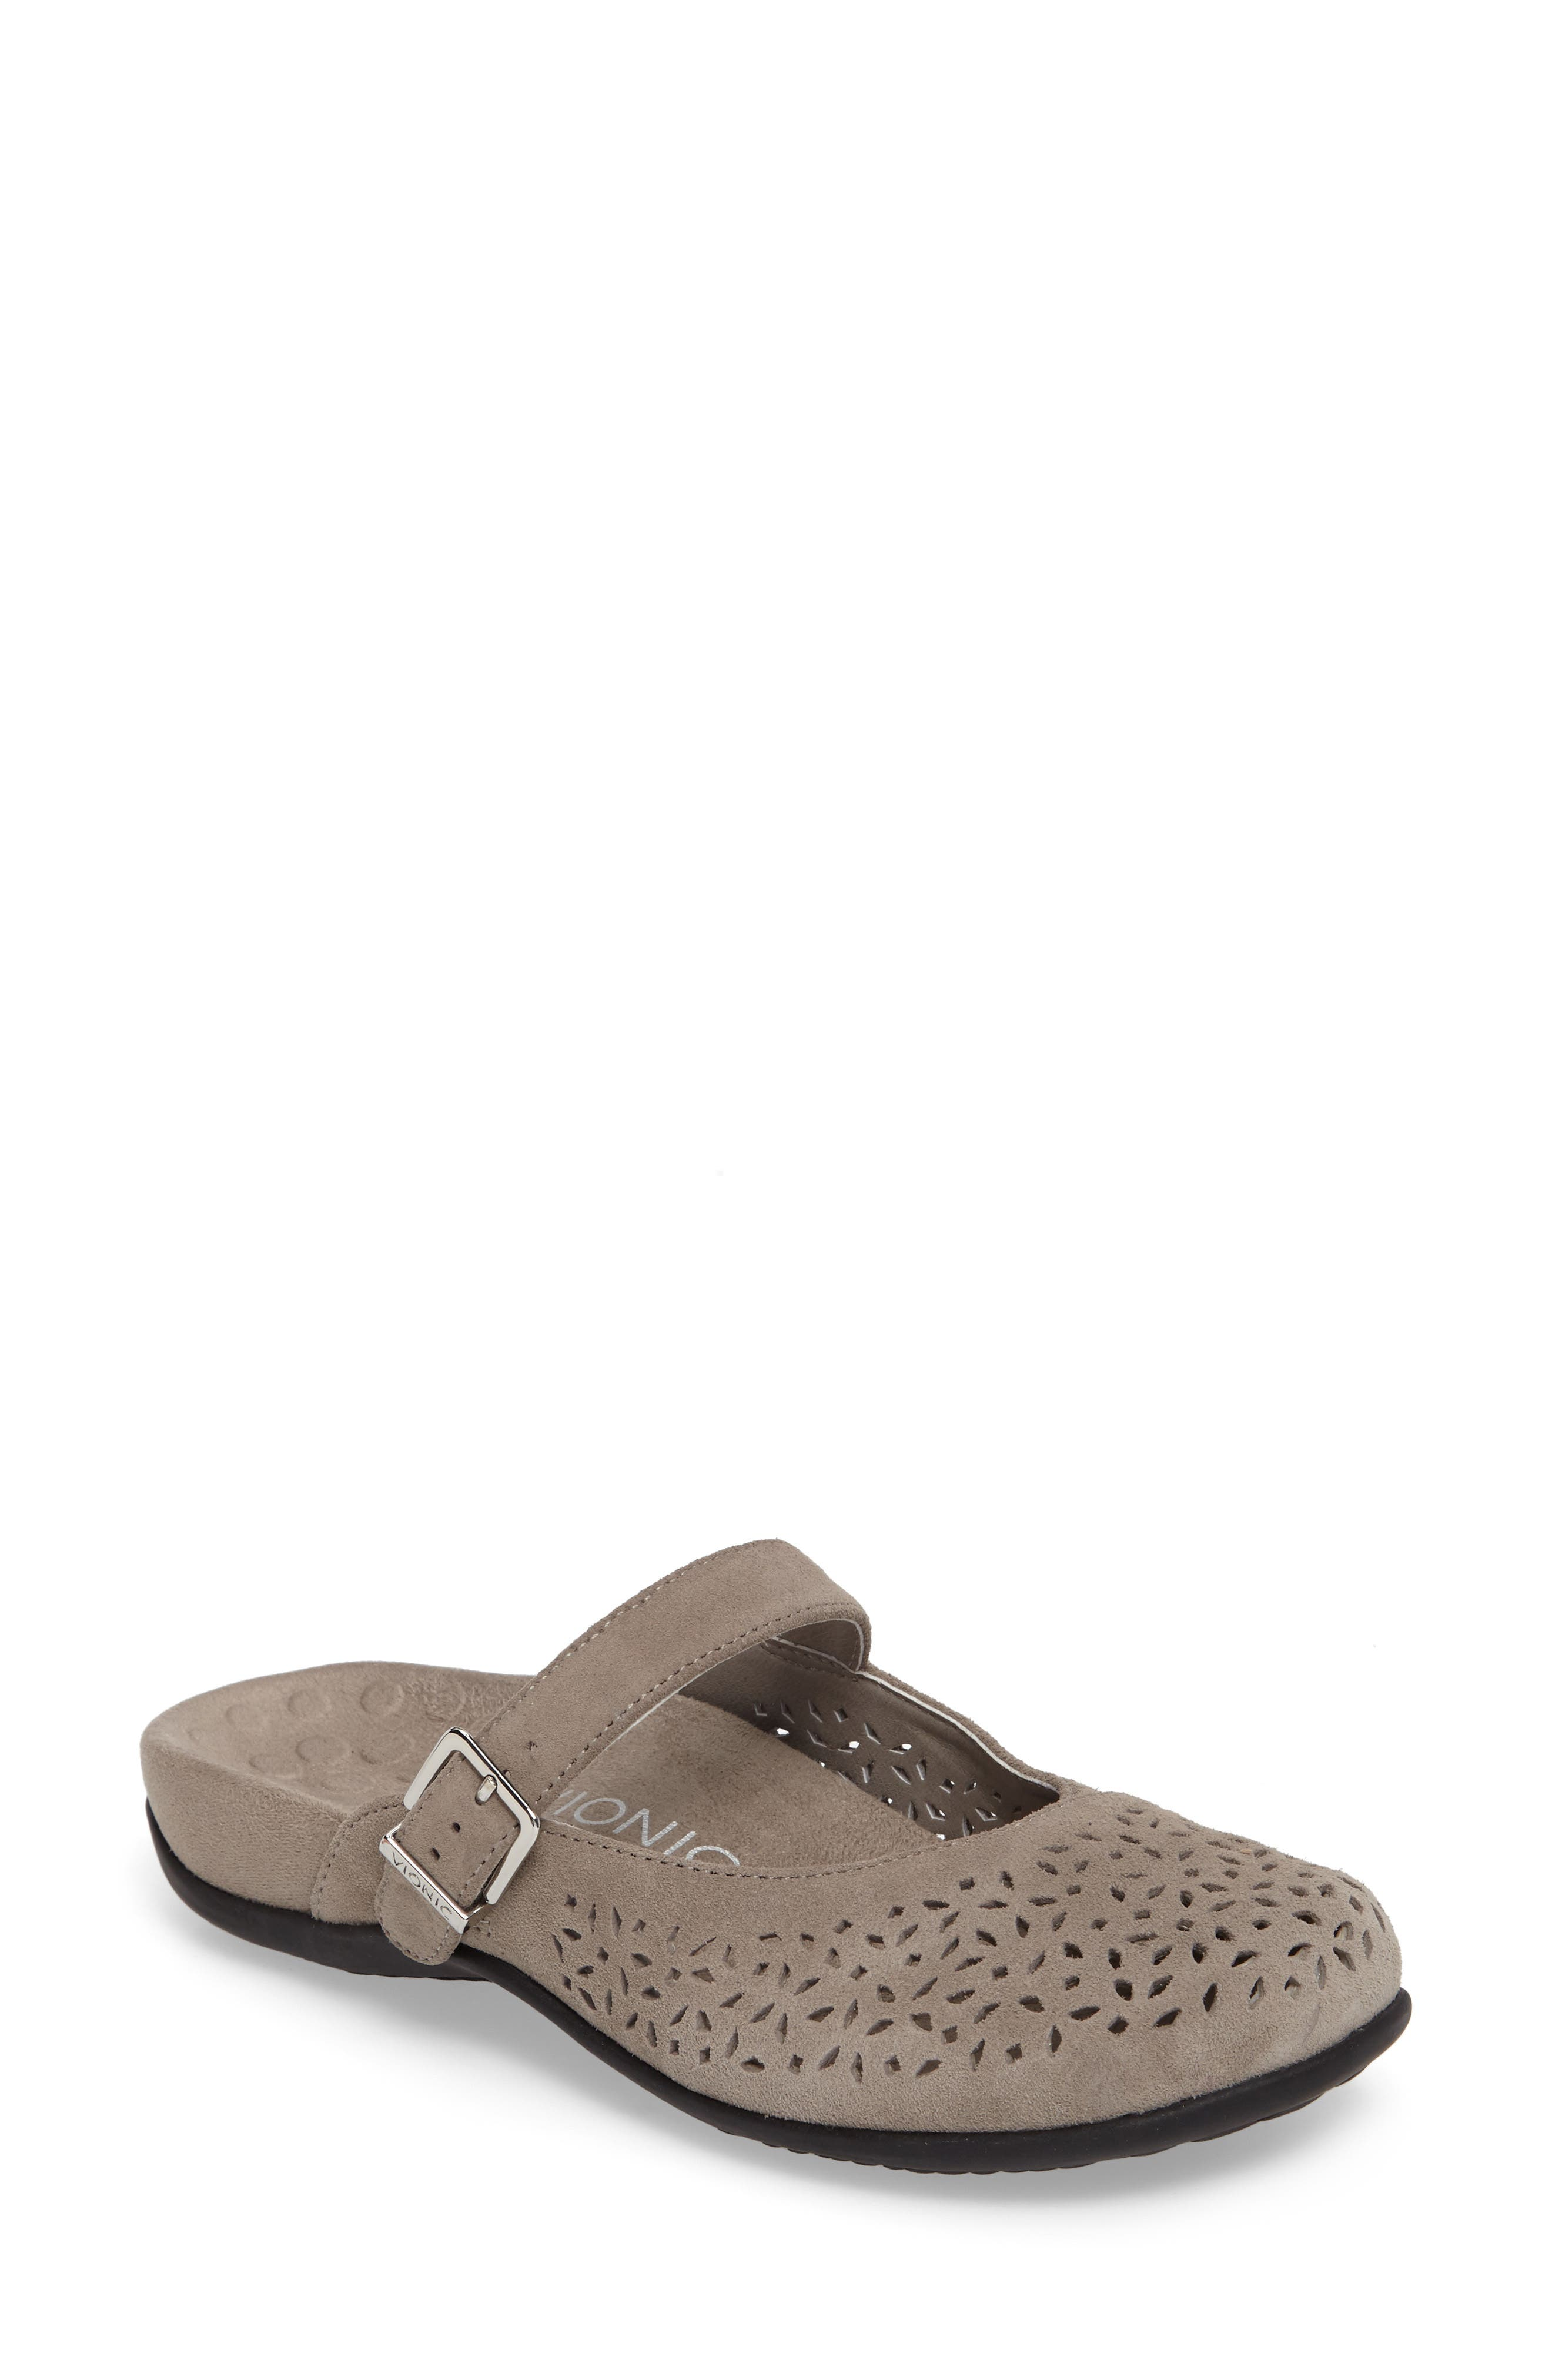 Rest Lidia Perforated Mary Jane Mule,                         Main,                         color, Grey Suede